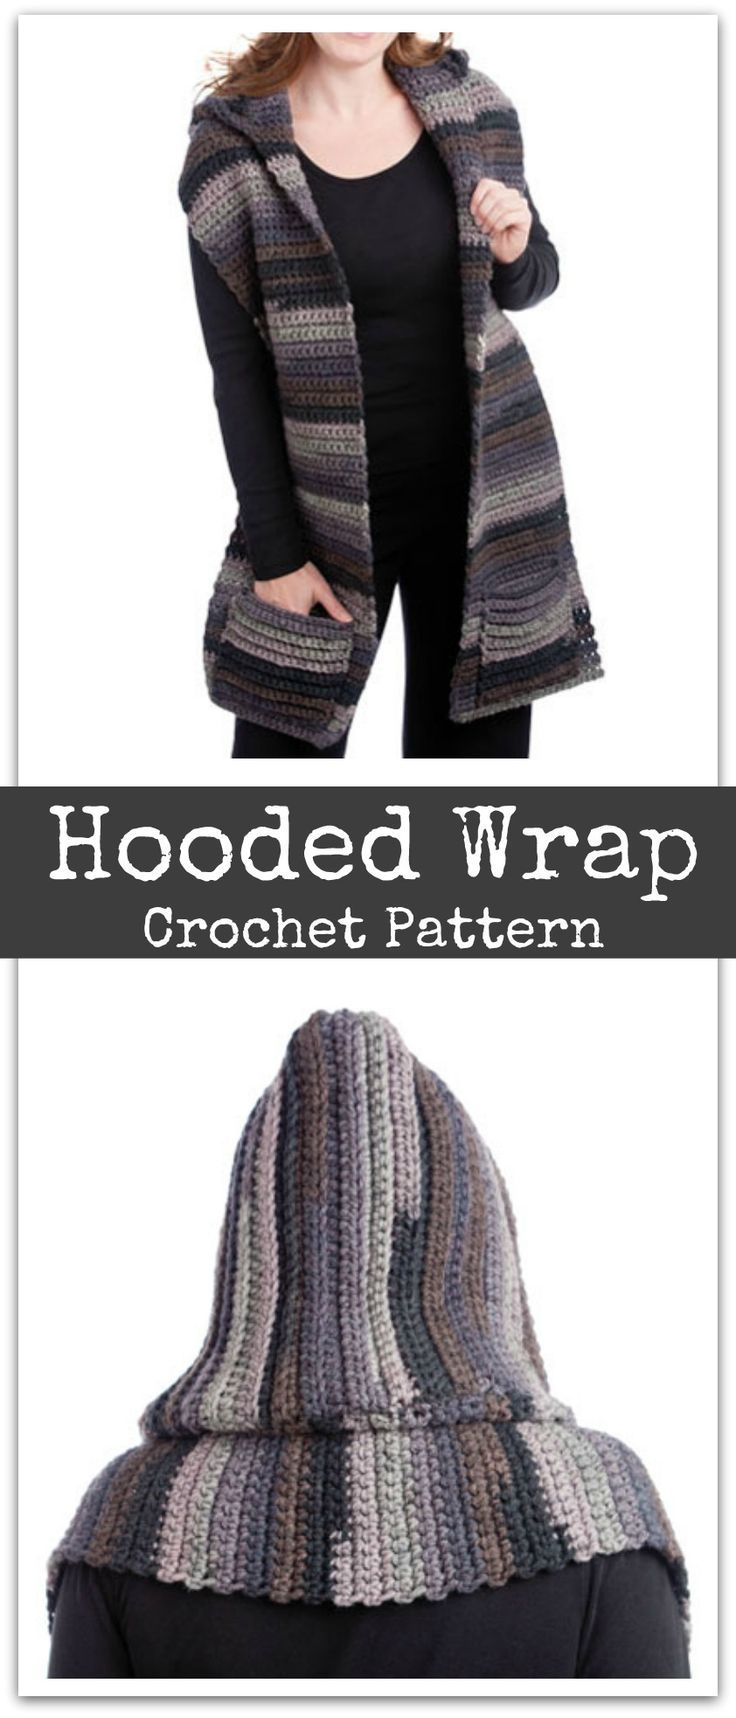 Hooded Wrap Crochet Pattern - You can easily make this hooded scarf ...